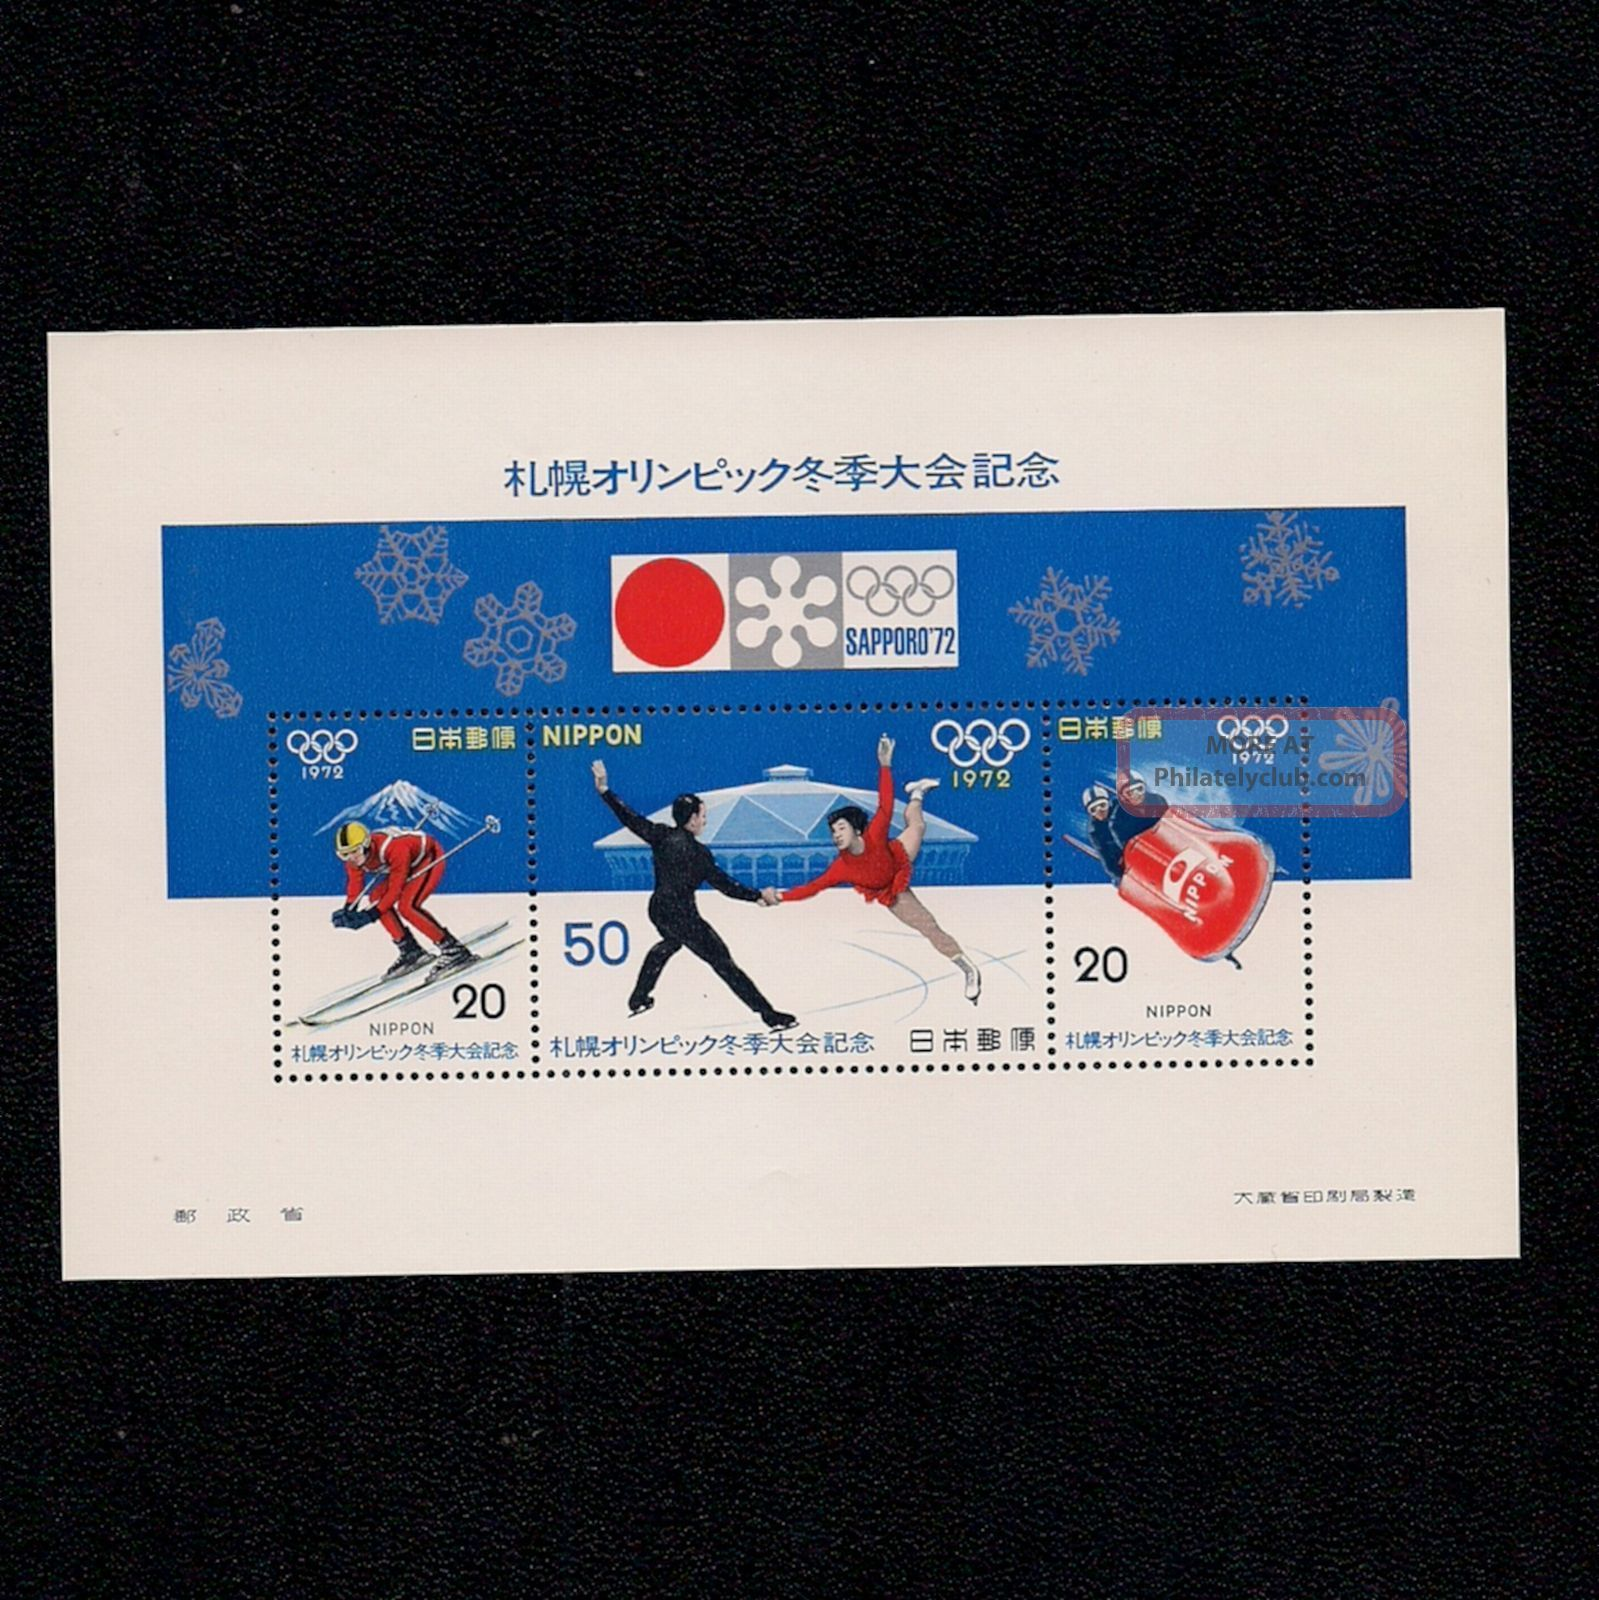 Japan: 1105a - - 1972 Sapporo Olympic Souvenir Sheet - - - - Sports photo